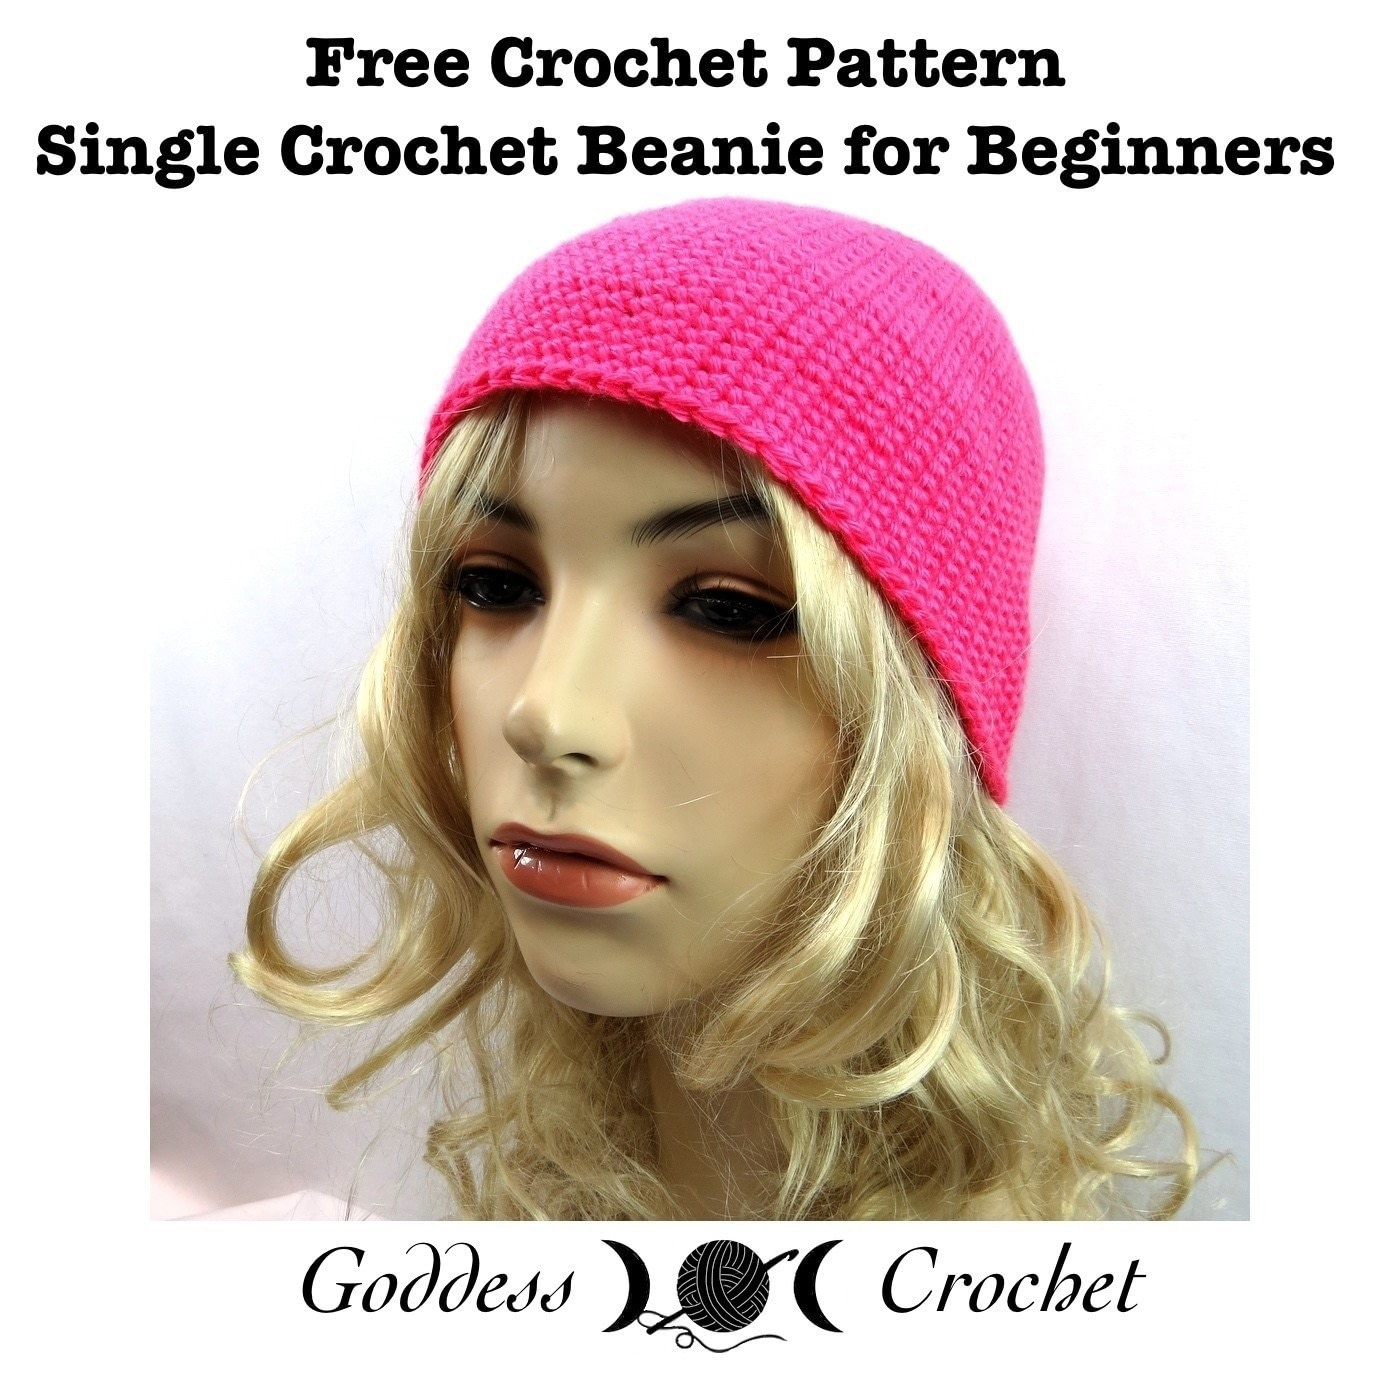 Single crochet beanie for beginners how to make a hat single crochet beanie for beginners how to make a hat yarncraft on cut out keep bankloansurffo Images